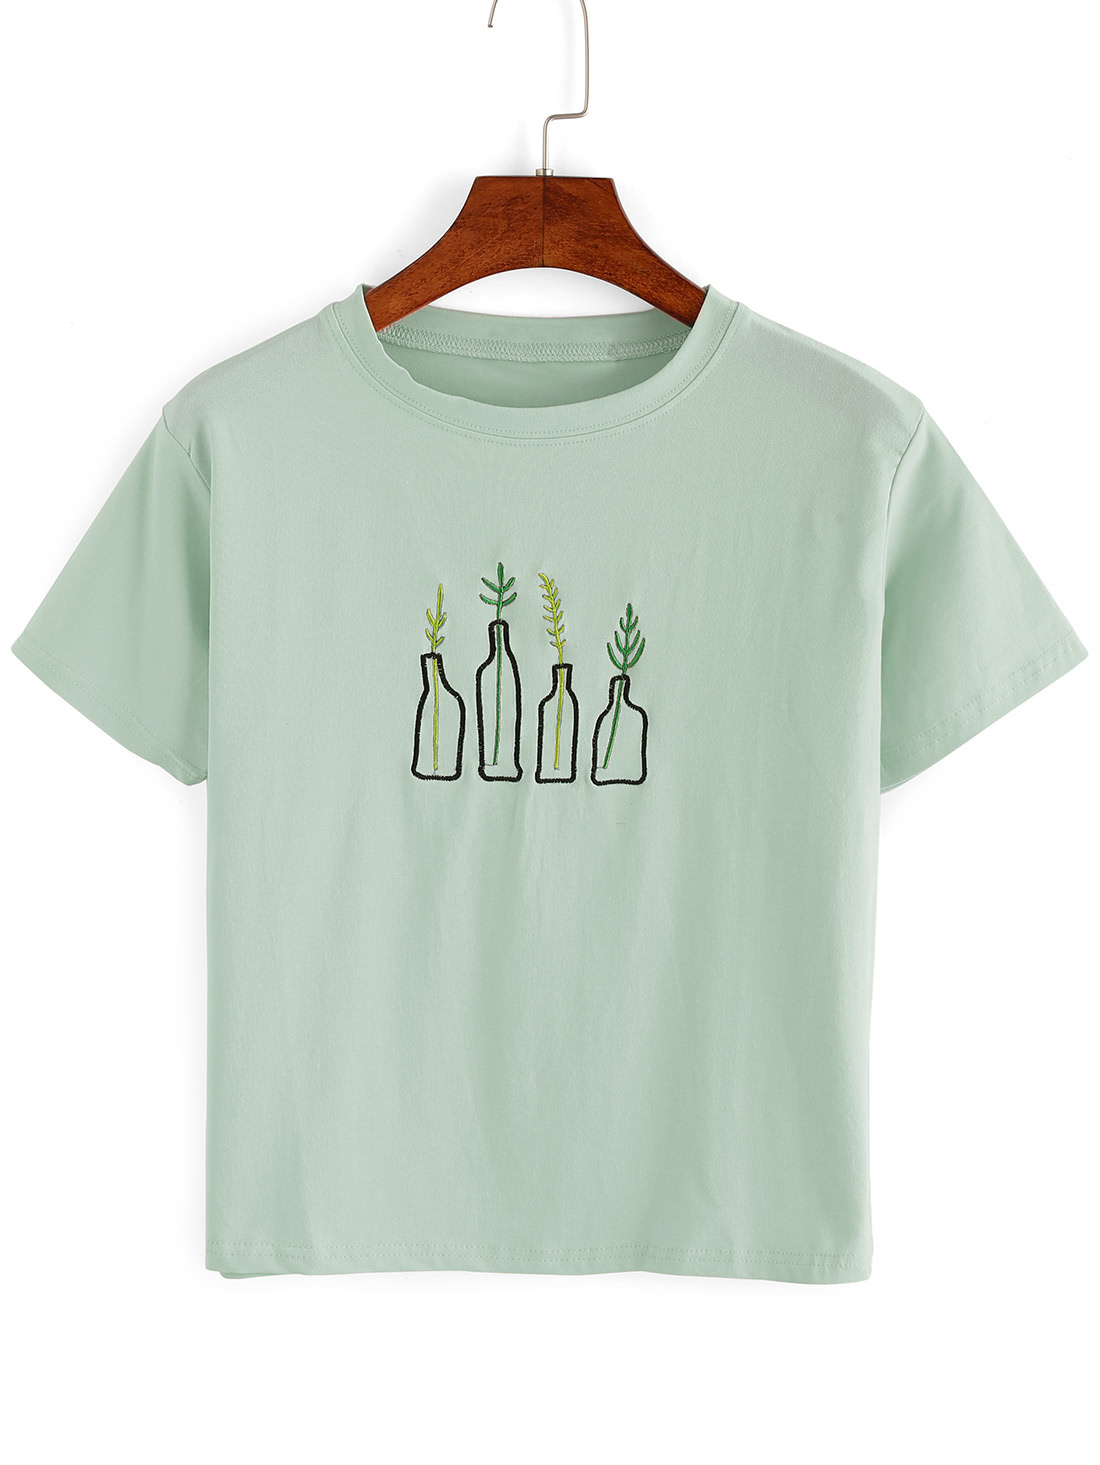 Green plant embroidered t shirt